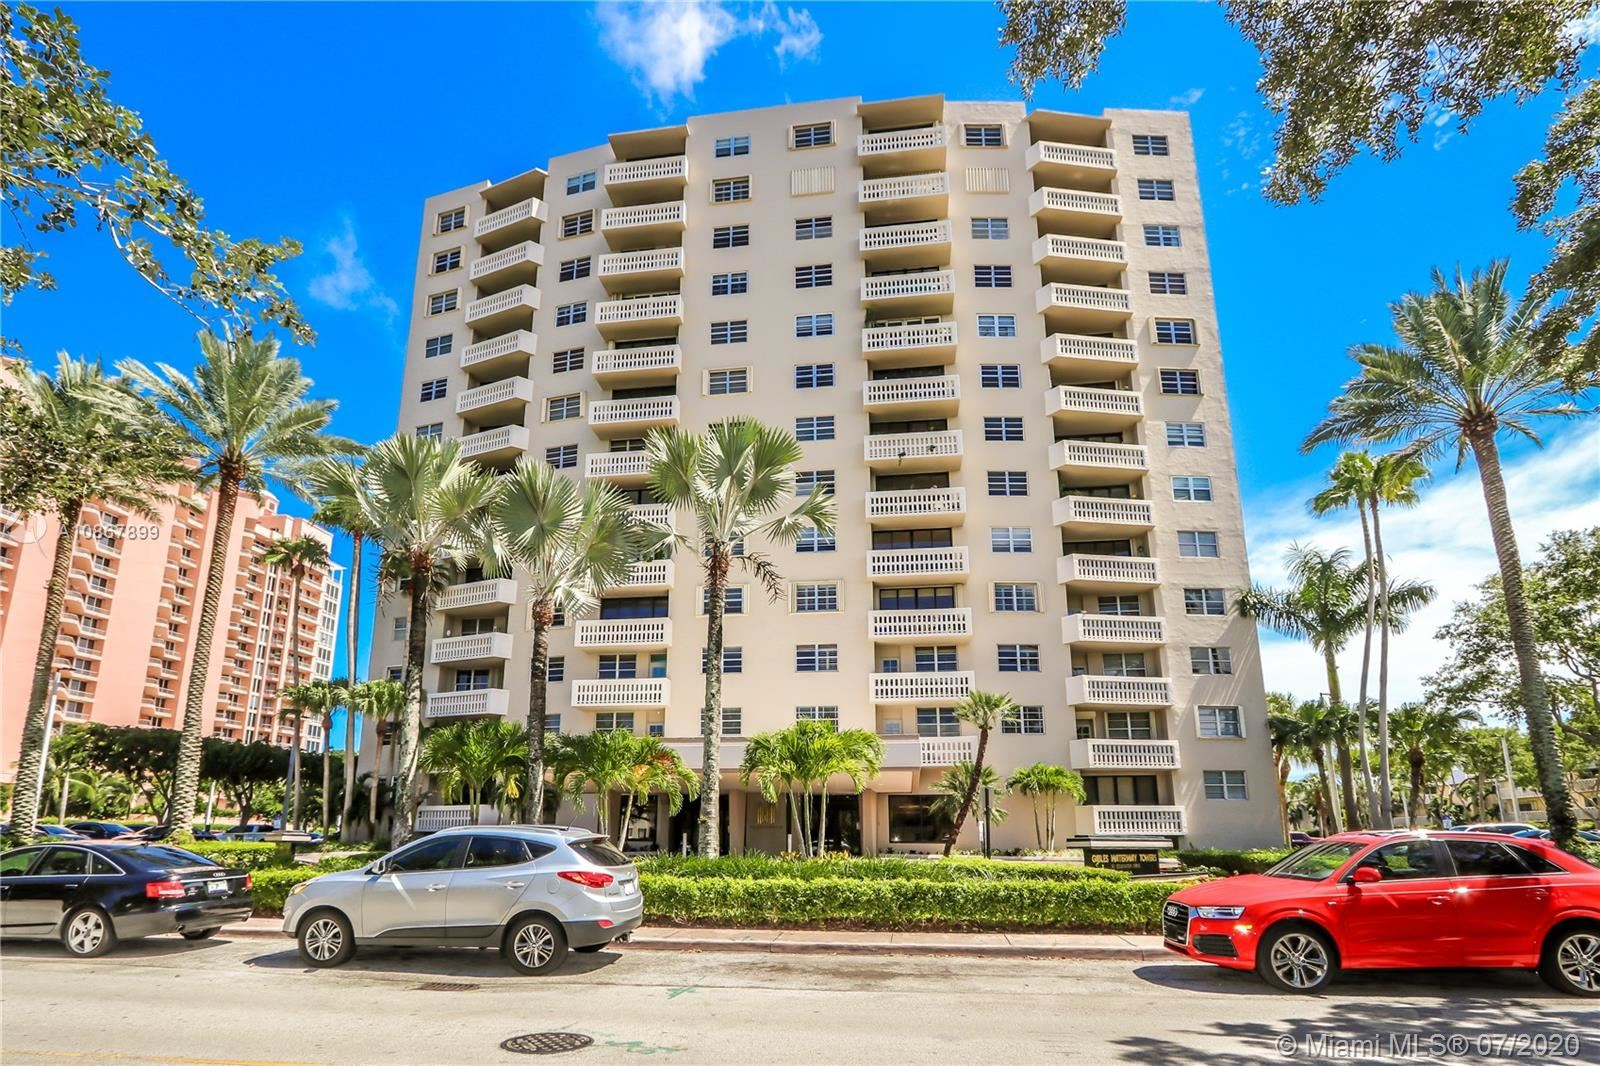 90 Edgewater Dr #605, Coral Gables, FL 33133 - #: A10867899